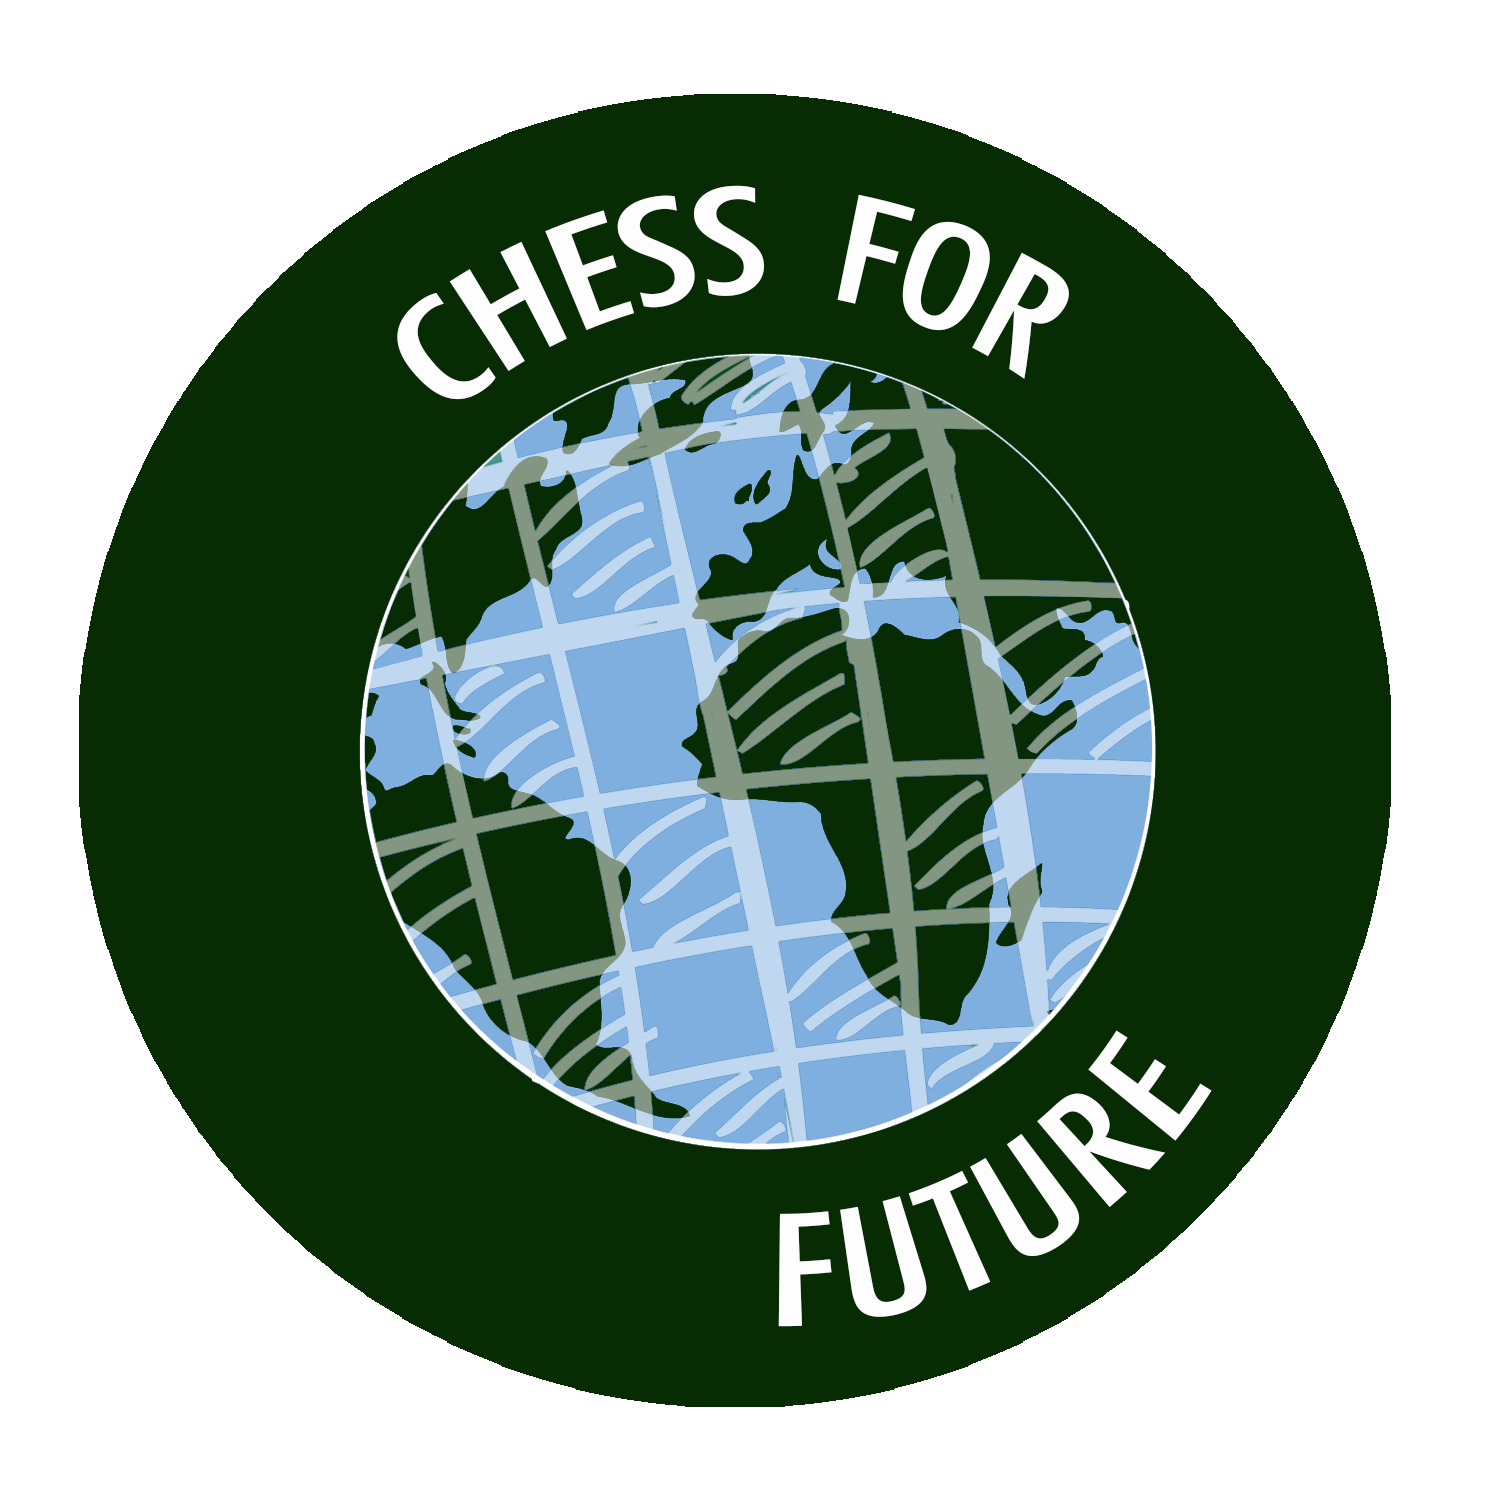 Chess For Future logo